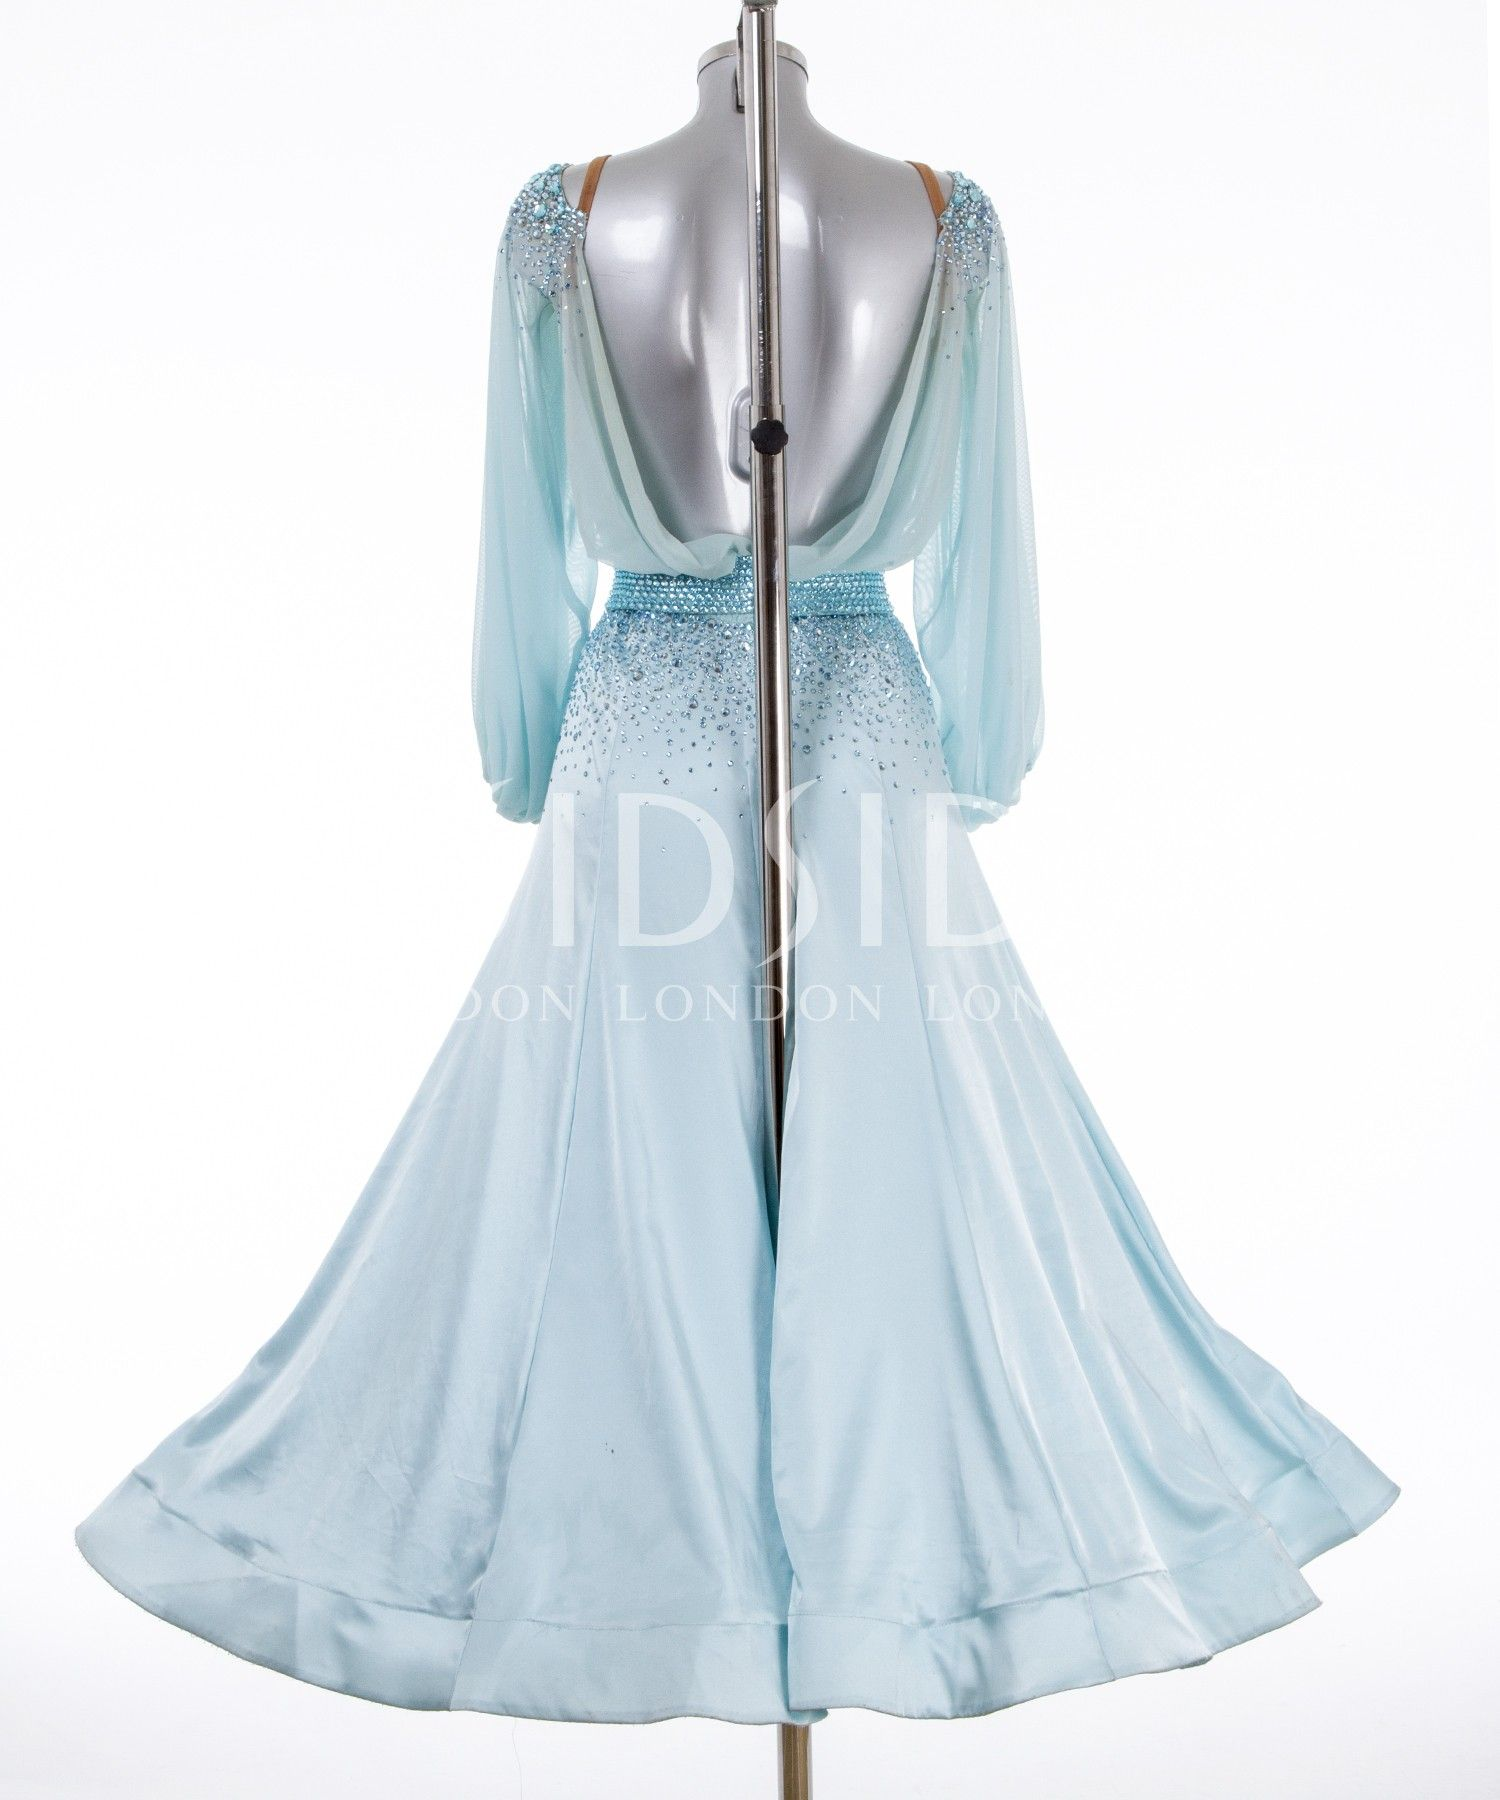 384877 Pale Turquoise Ballroom Dress | Ballroom dresses for sale ...